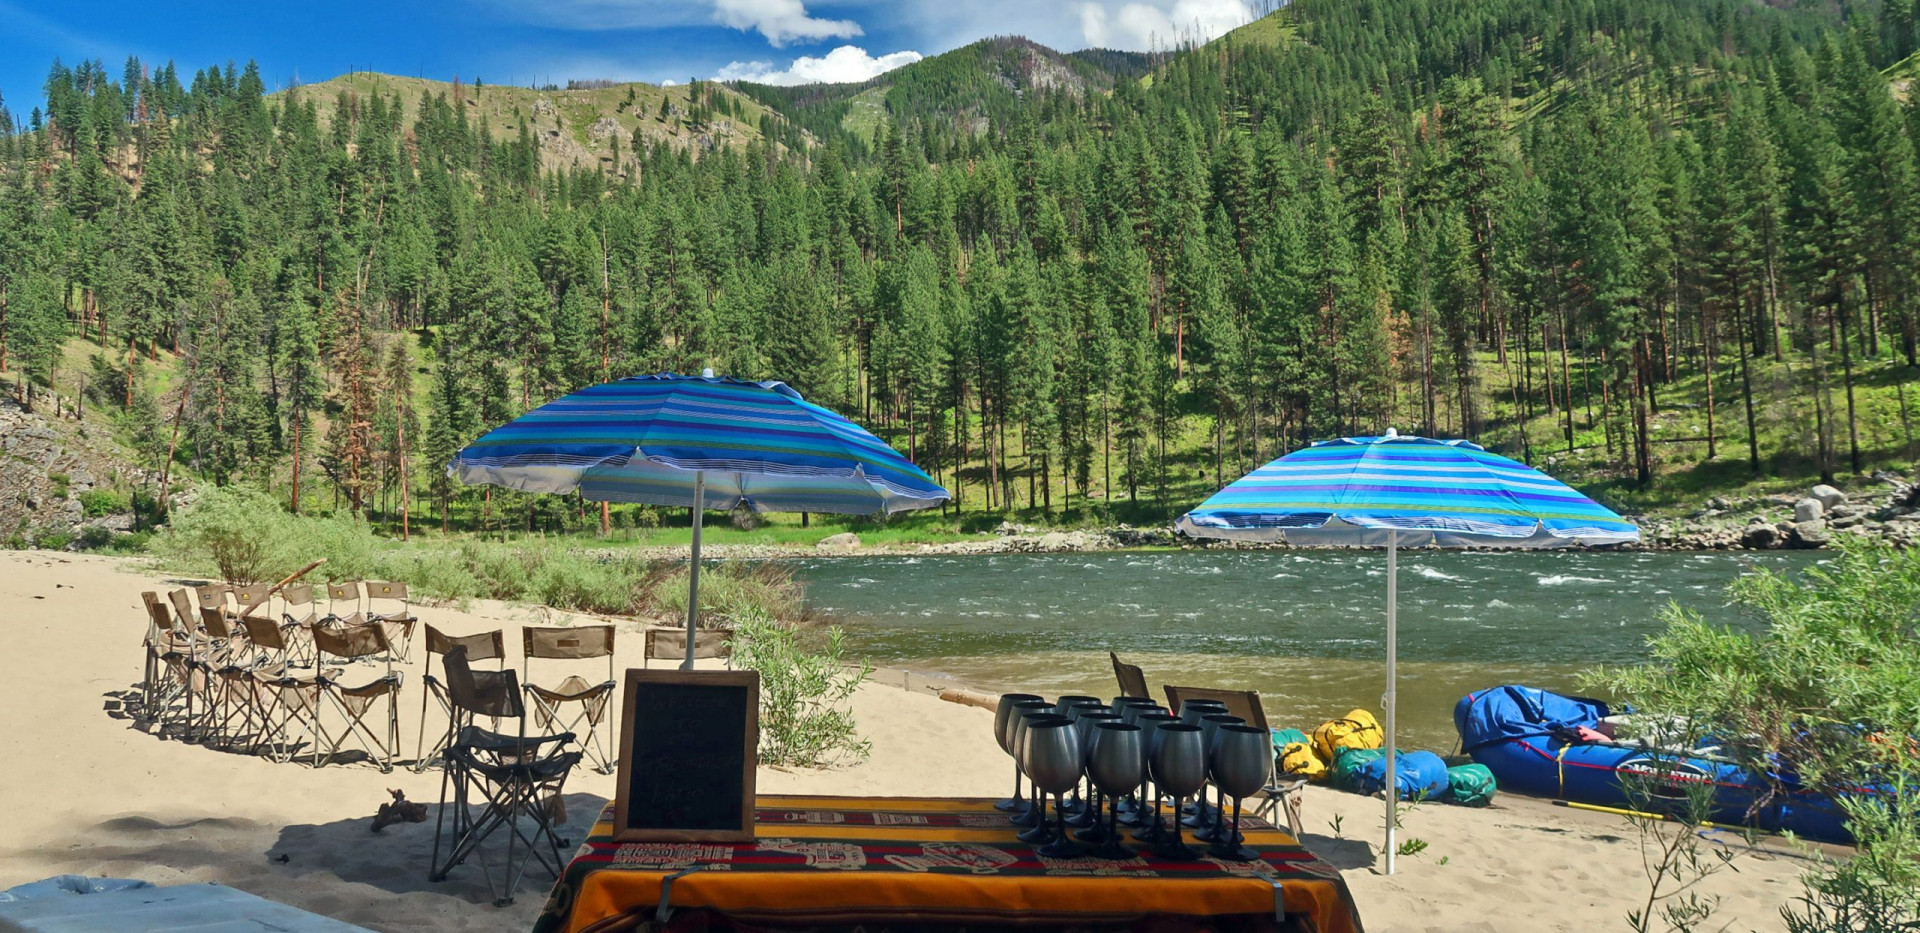 Luxury camping - glamping - river trip